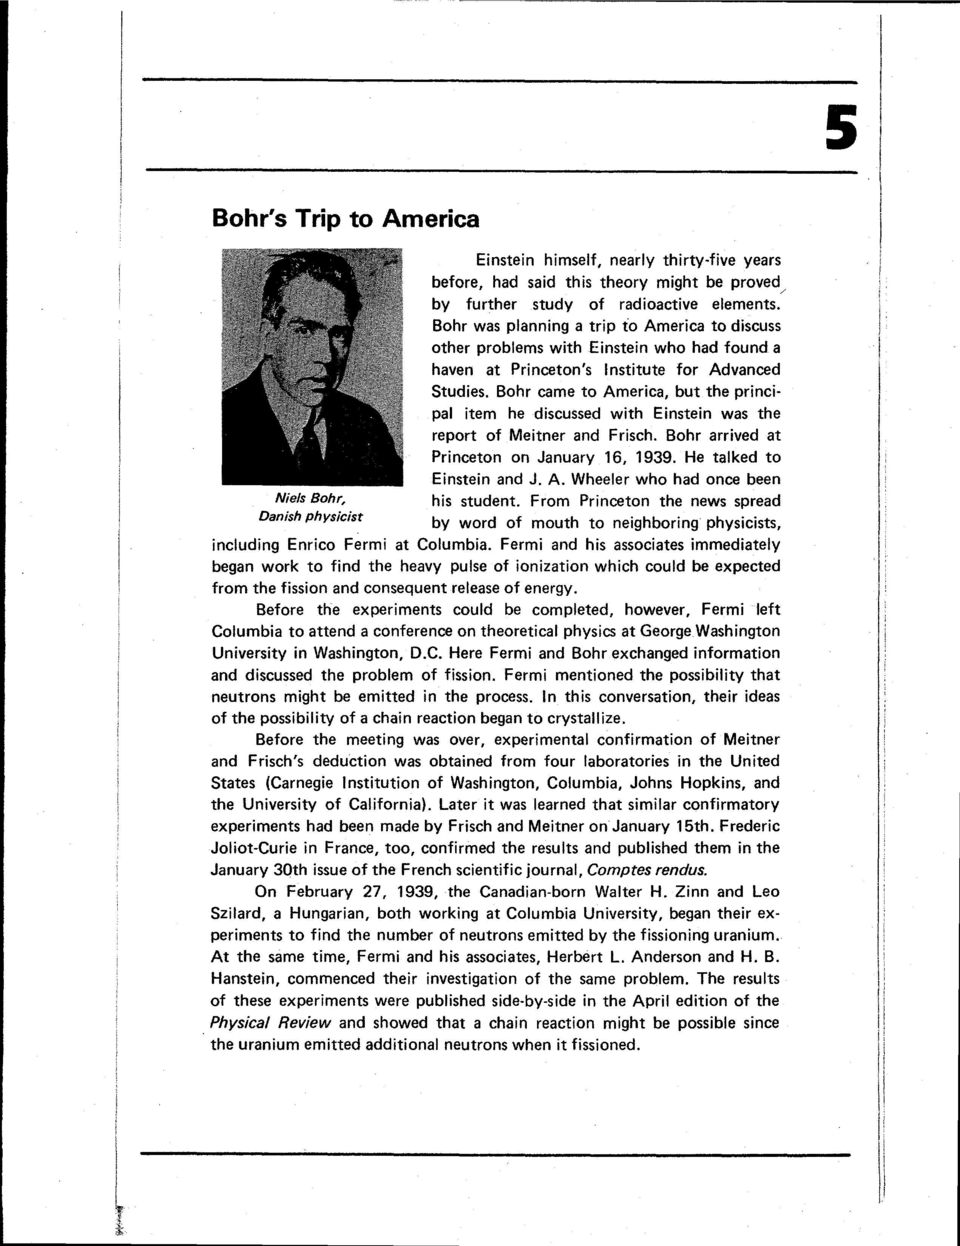 Bohr came to America, but the principal item he discussed with Einstein was the report of Meitner and Frisch. Bohr arrived at Princeton on January 16, 1939. He talked to Einstein and J. A. Wheeler who had once been Nieis Bohr, his student.